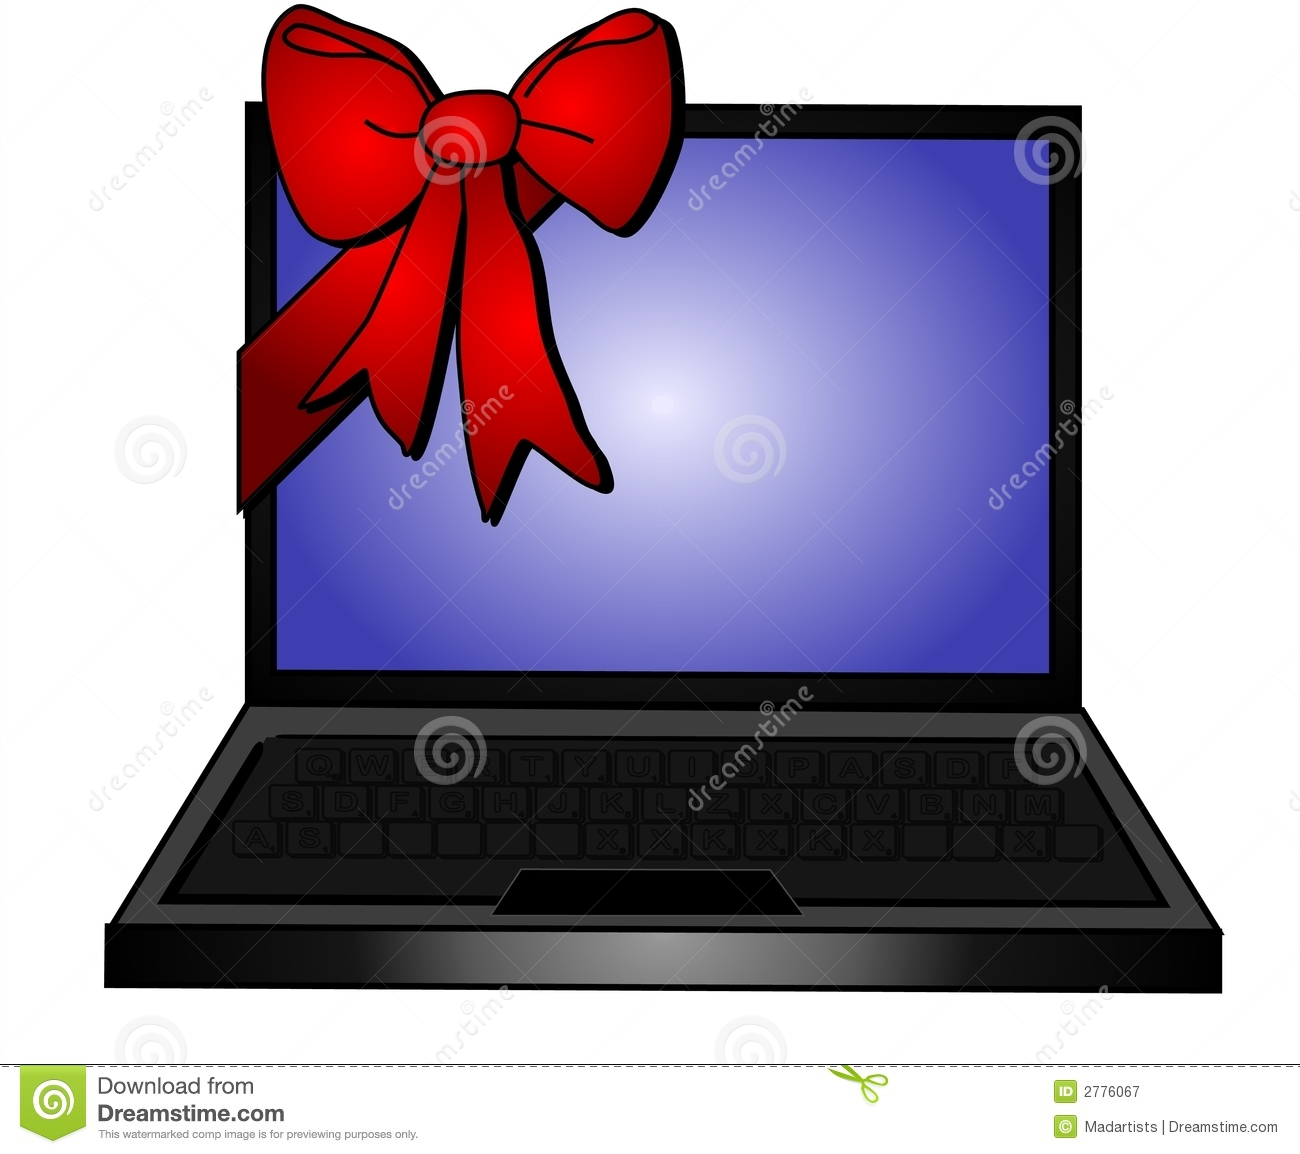 laptop red bow gift promotions stock illustration